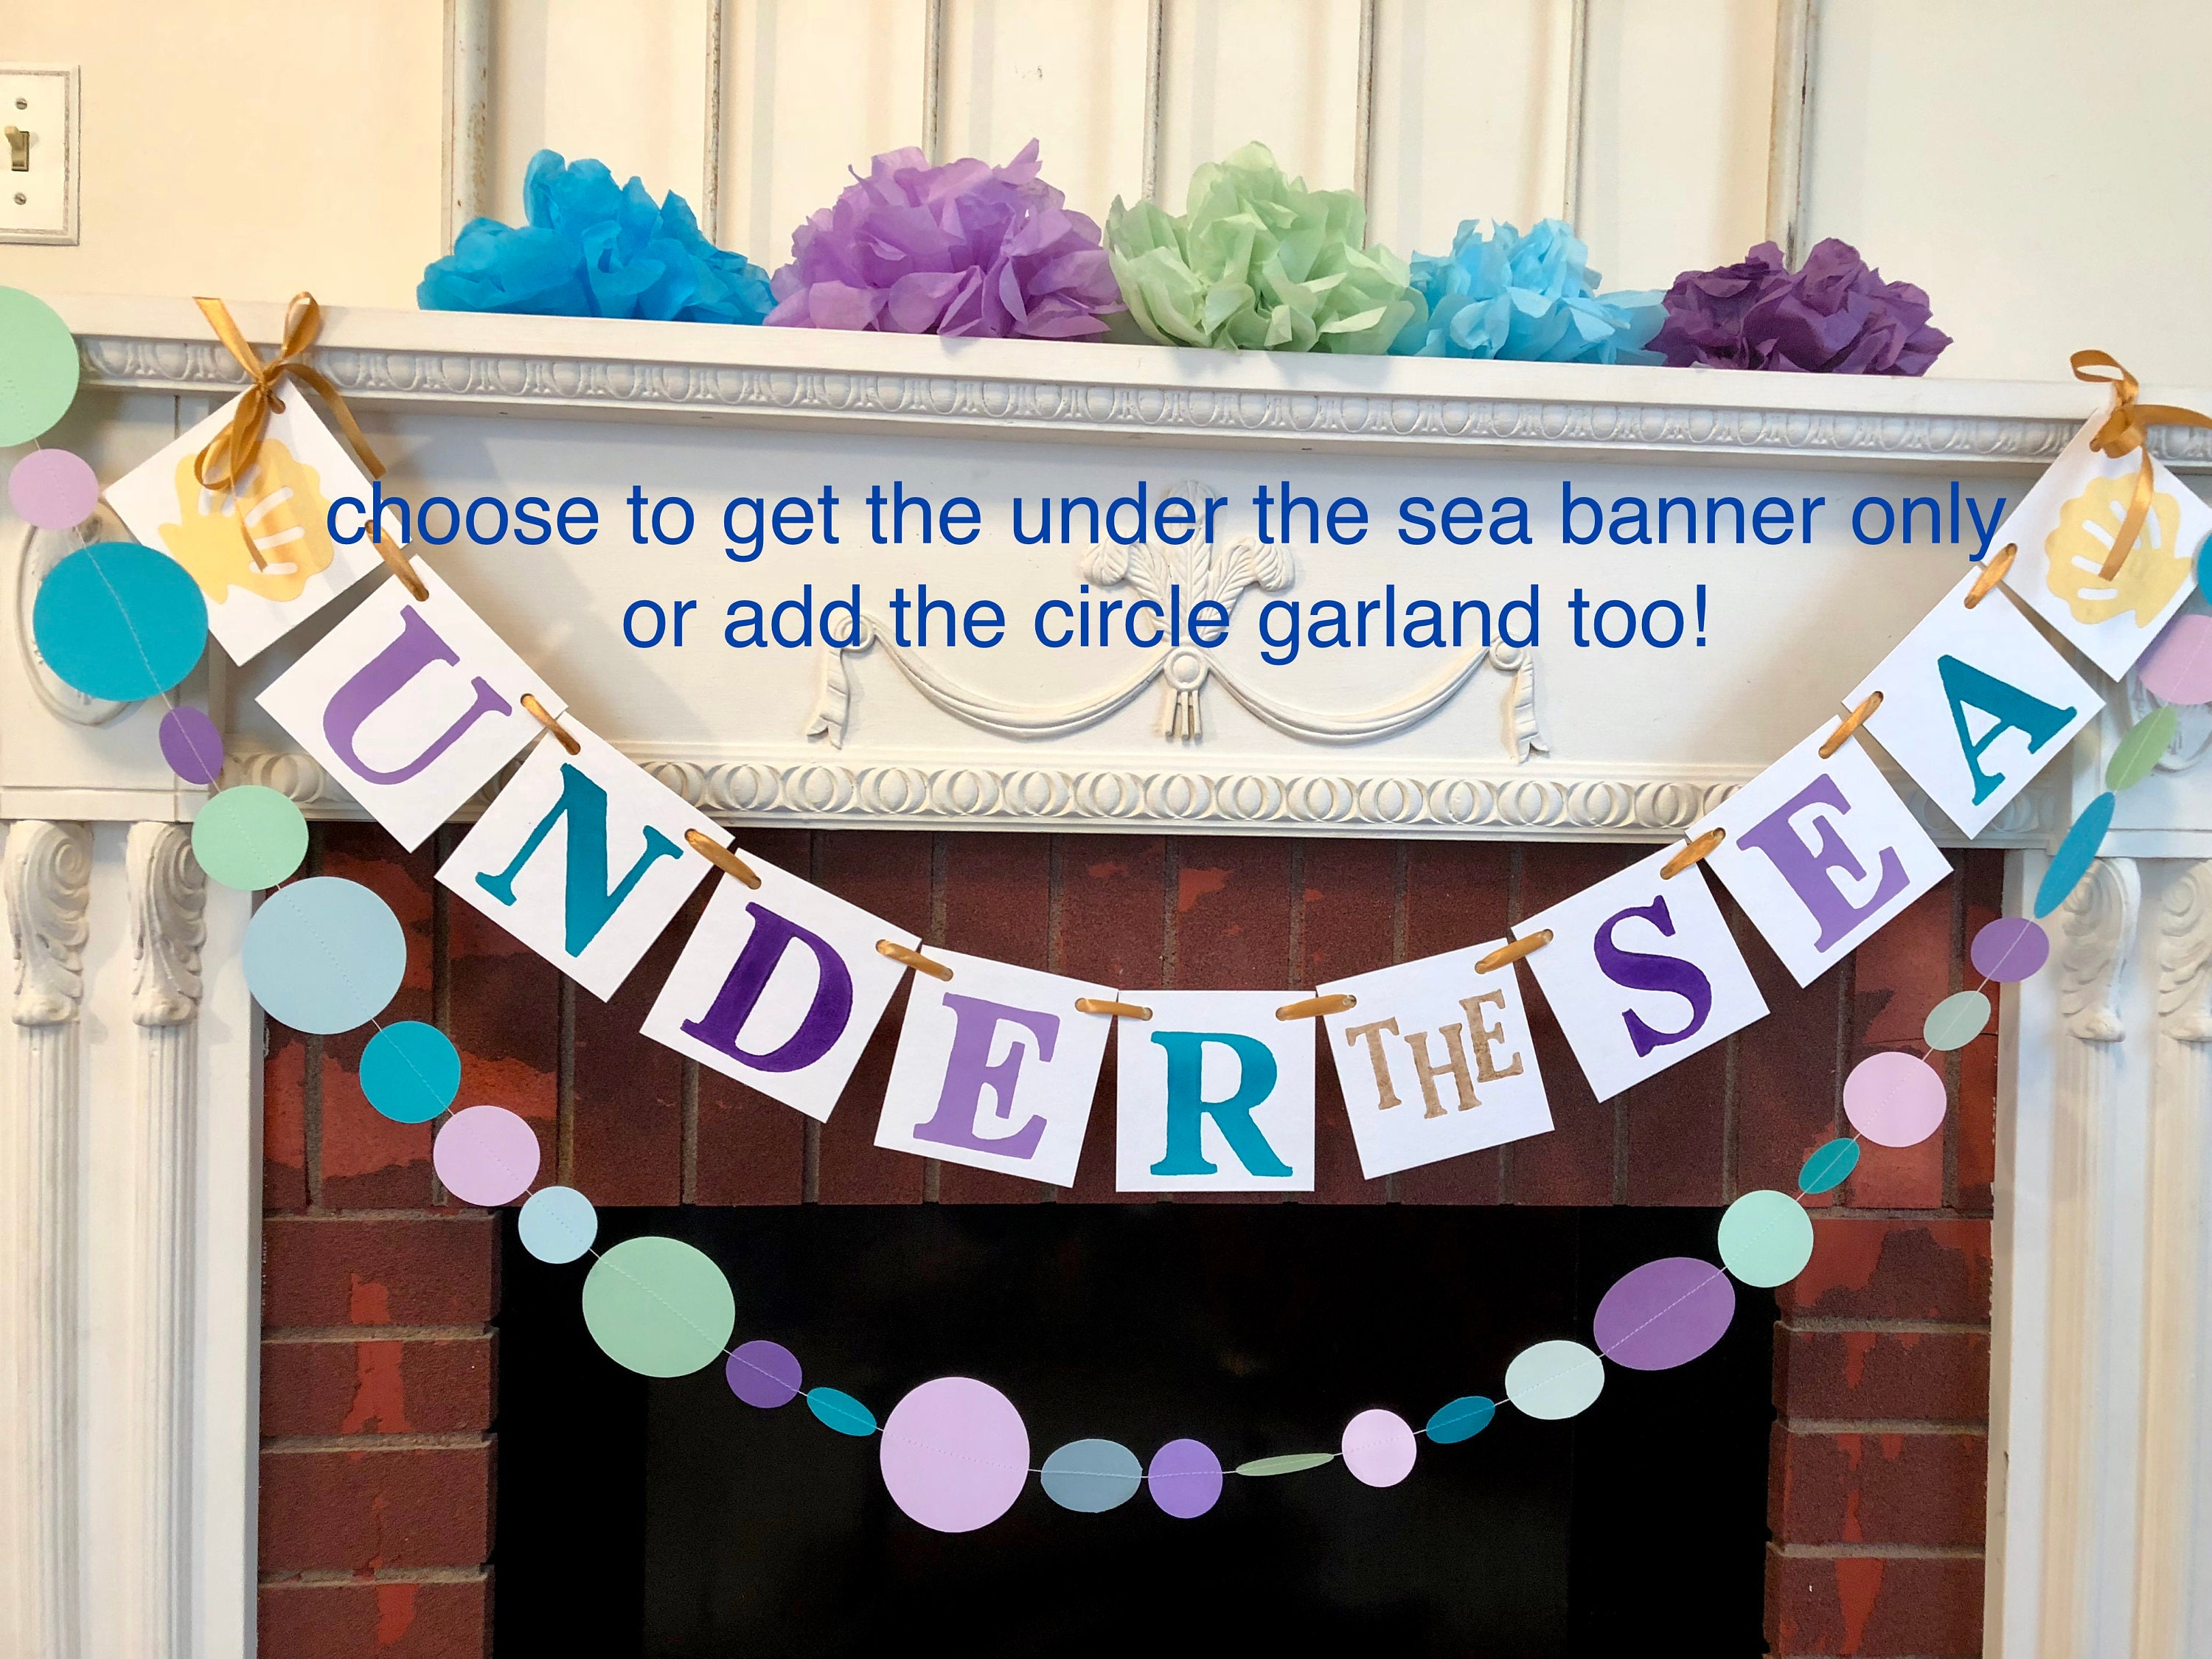 p the il mermaid birthday tropical beach your under party banner pool decorations sea decor fullxfull colors